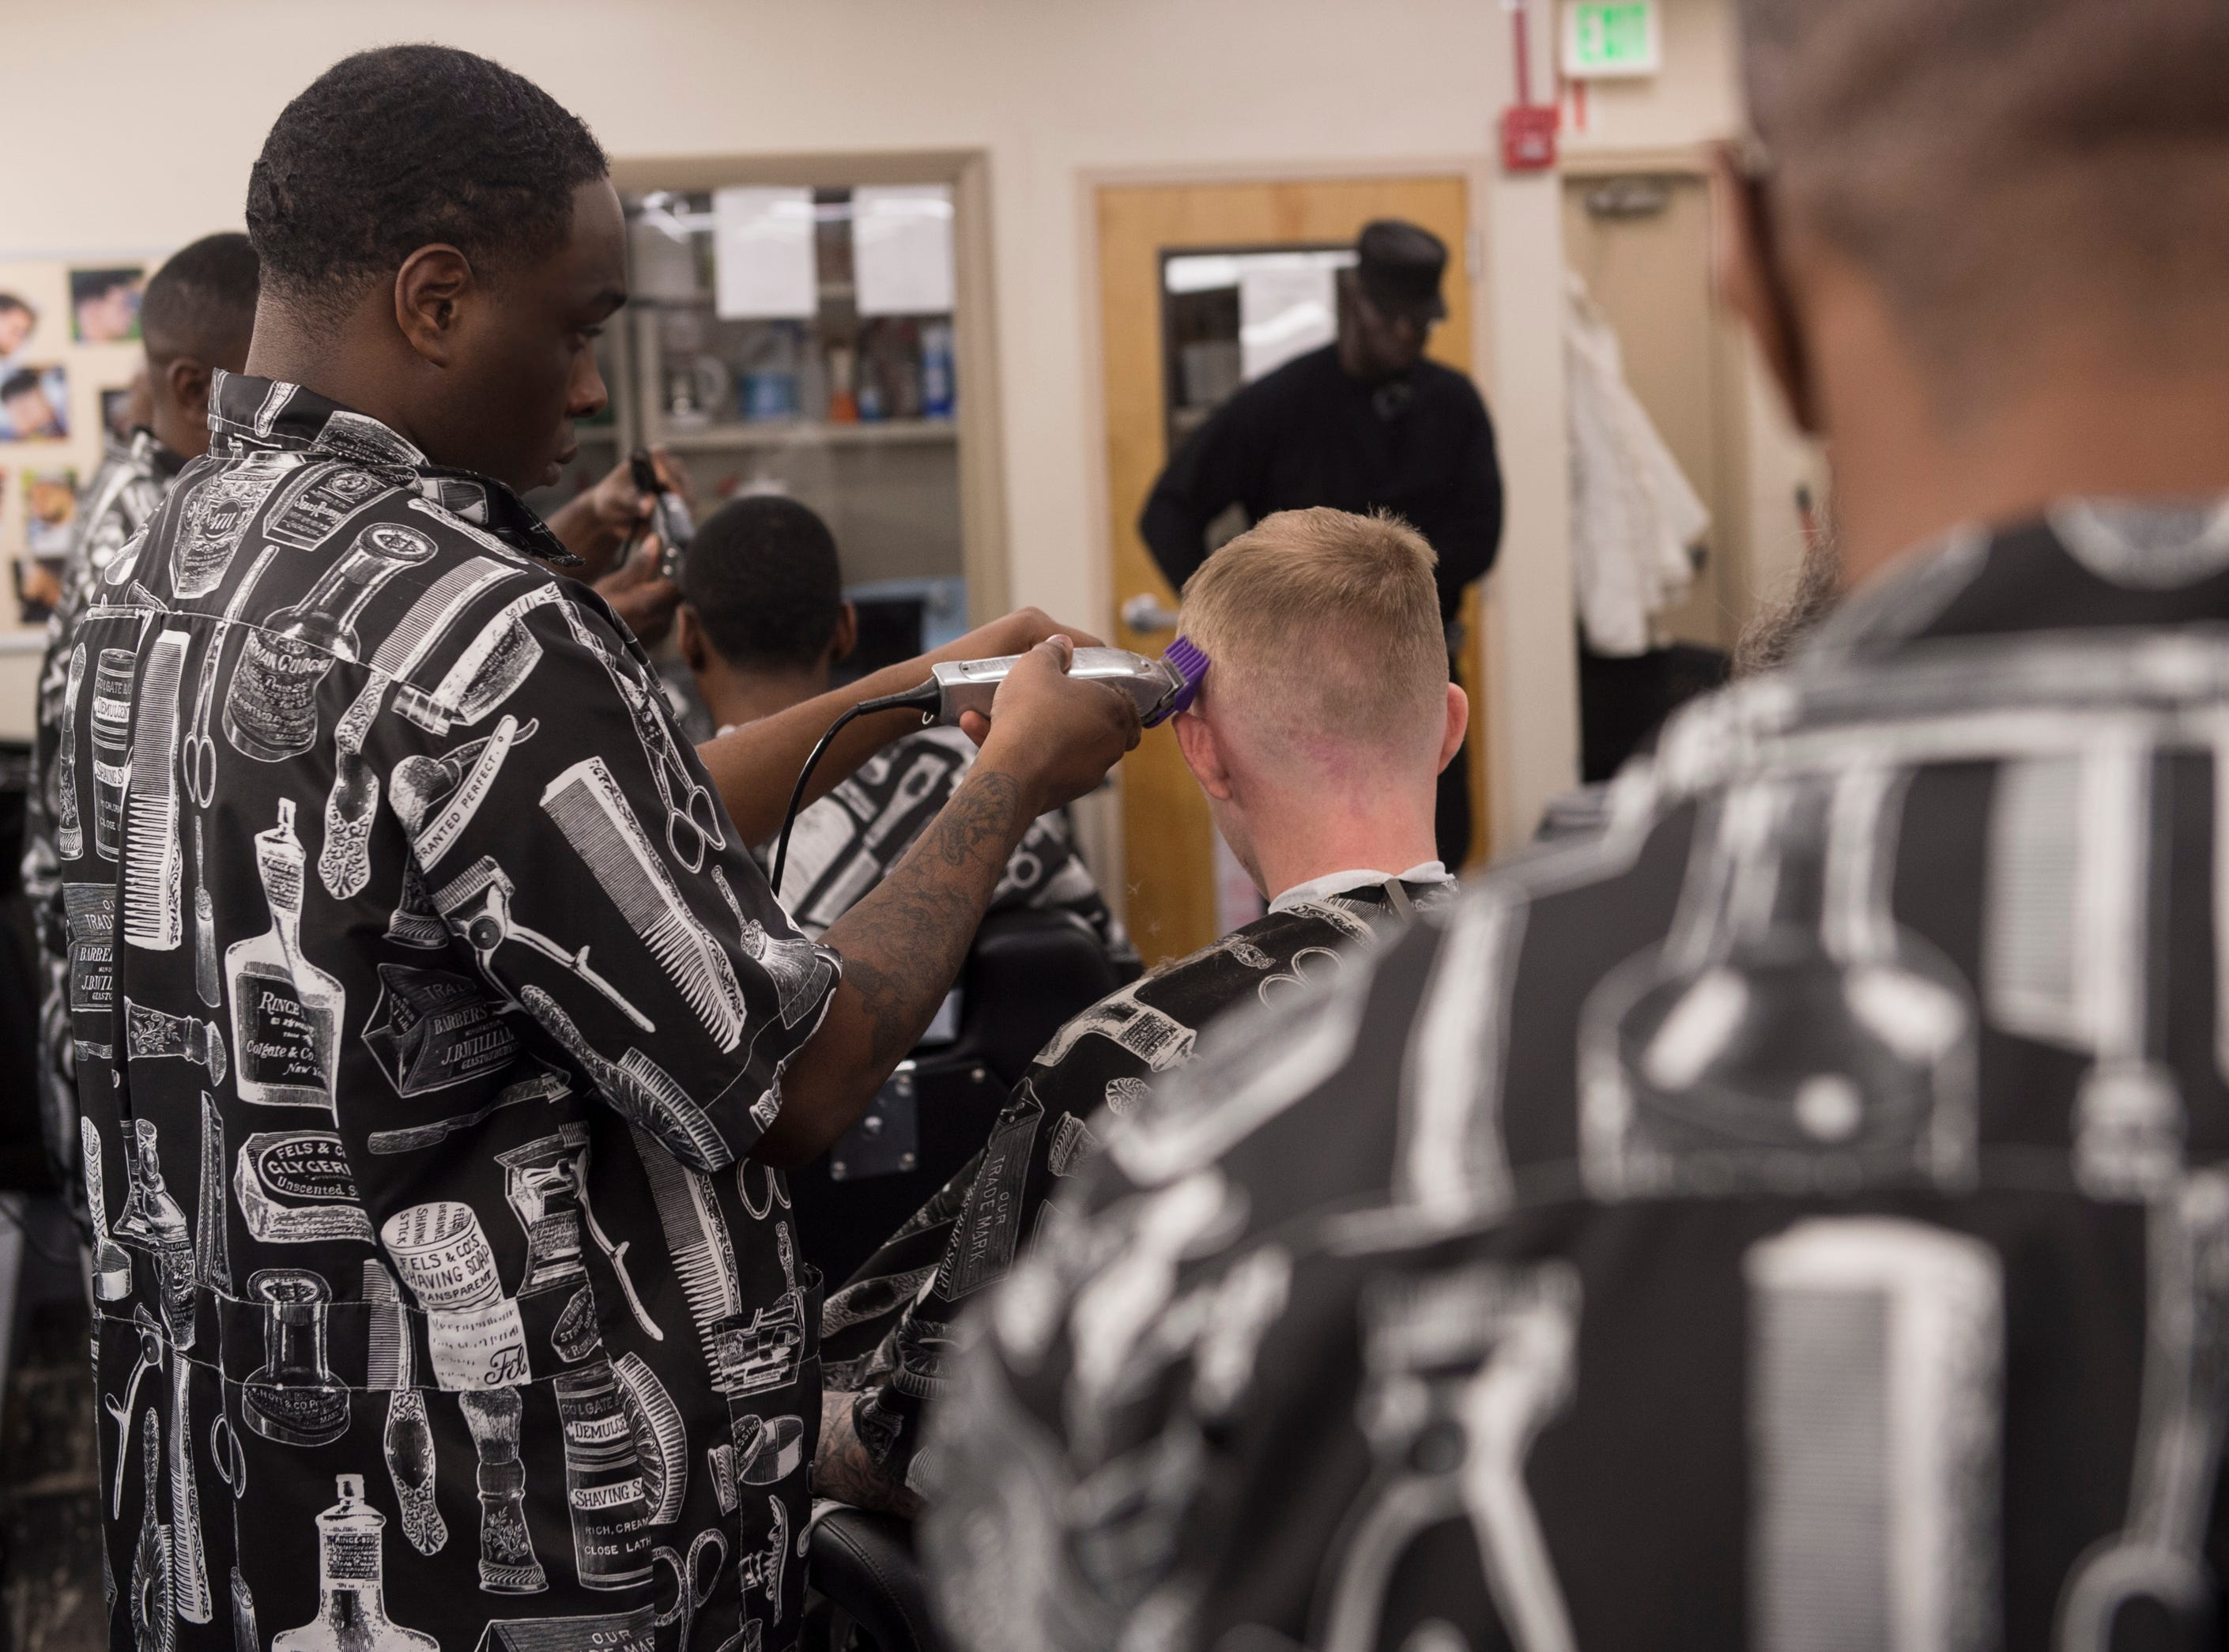 Barber student-inmates work on projects at the Ingram State Technical College Draper instructional service center in Elmore, Ala., on Thursday, Feb. 21, 2019.